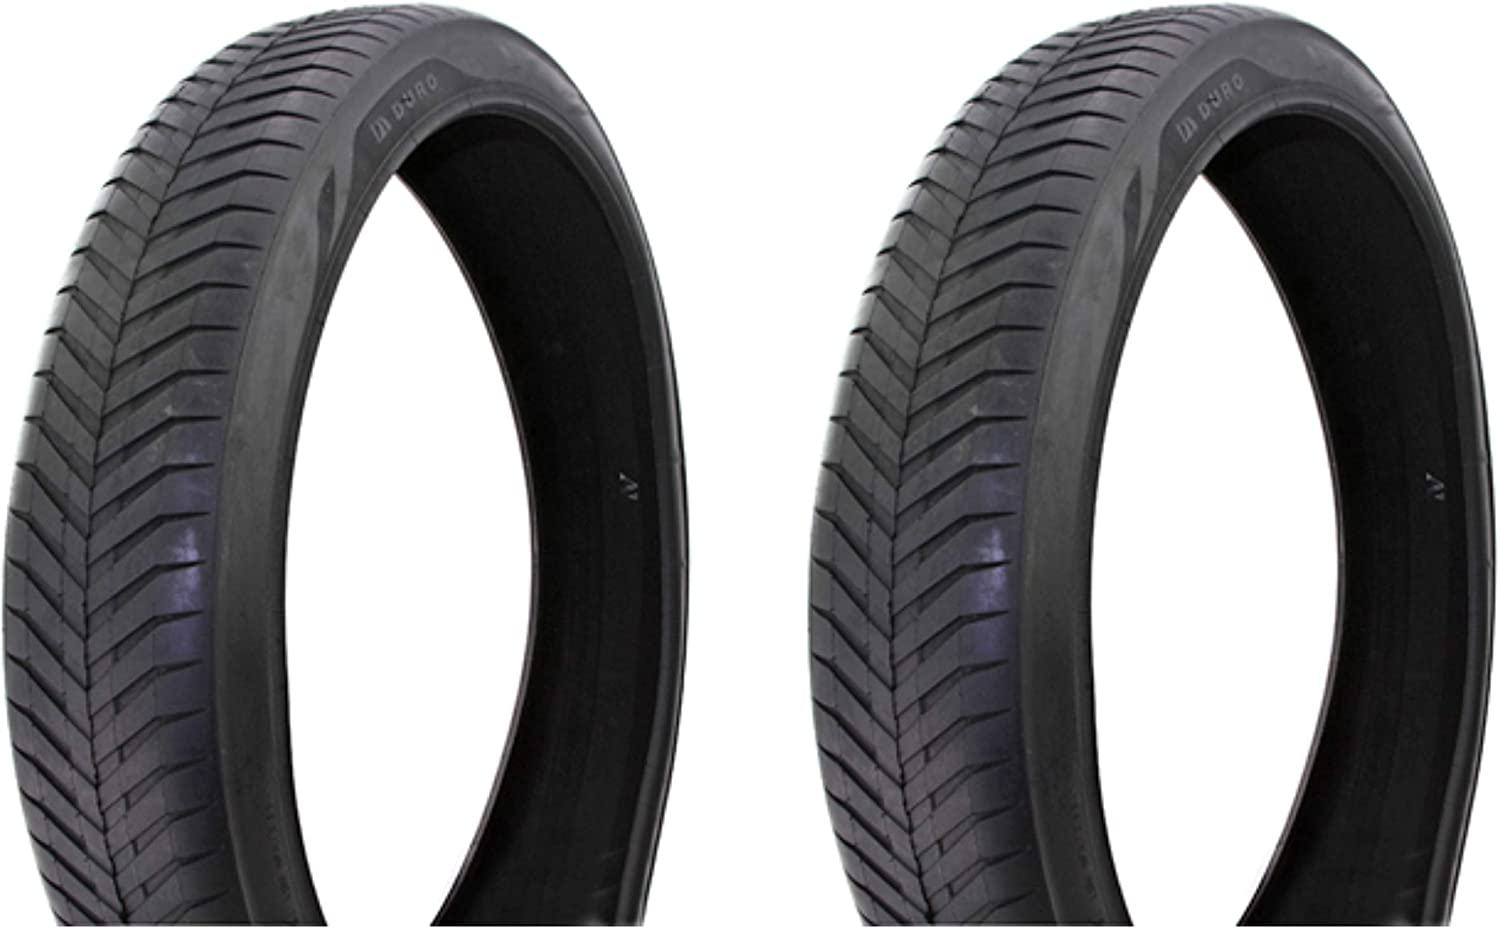 Lowrider Tire Set. 2 Tires. Two Tires Black Wholesale Duro 4